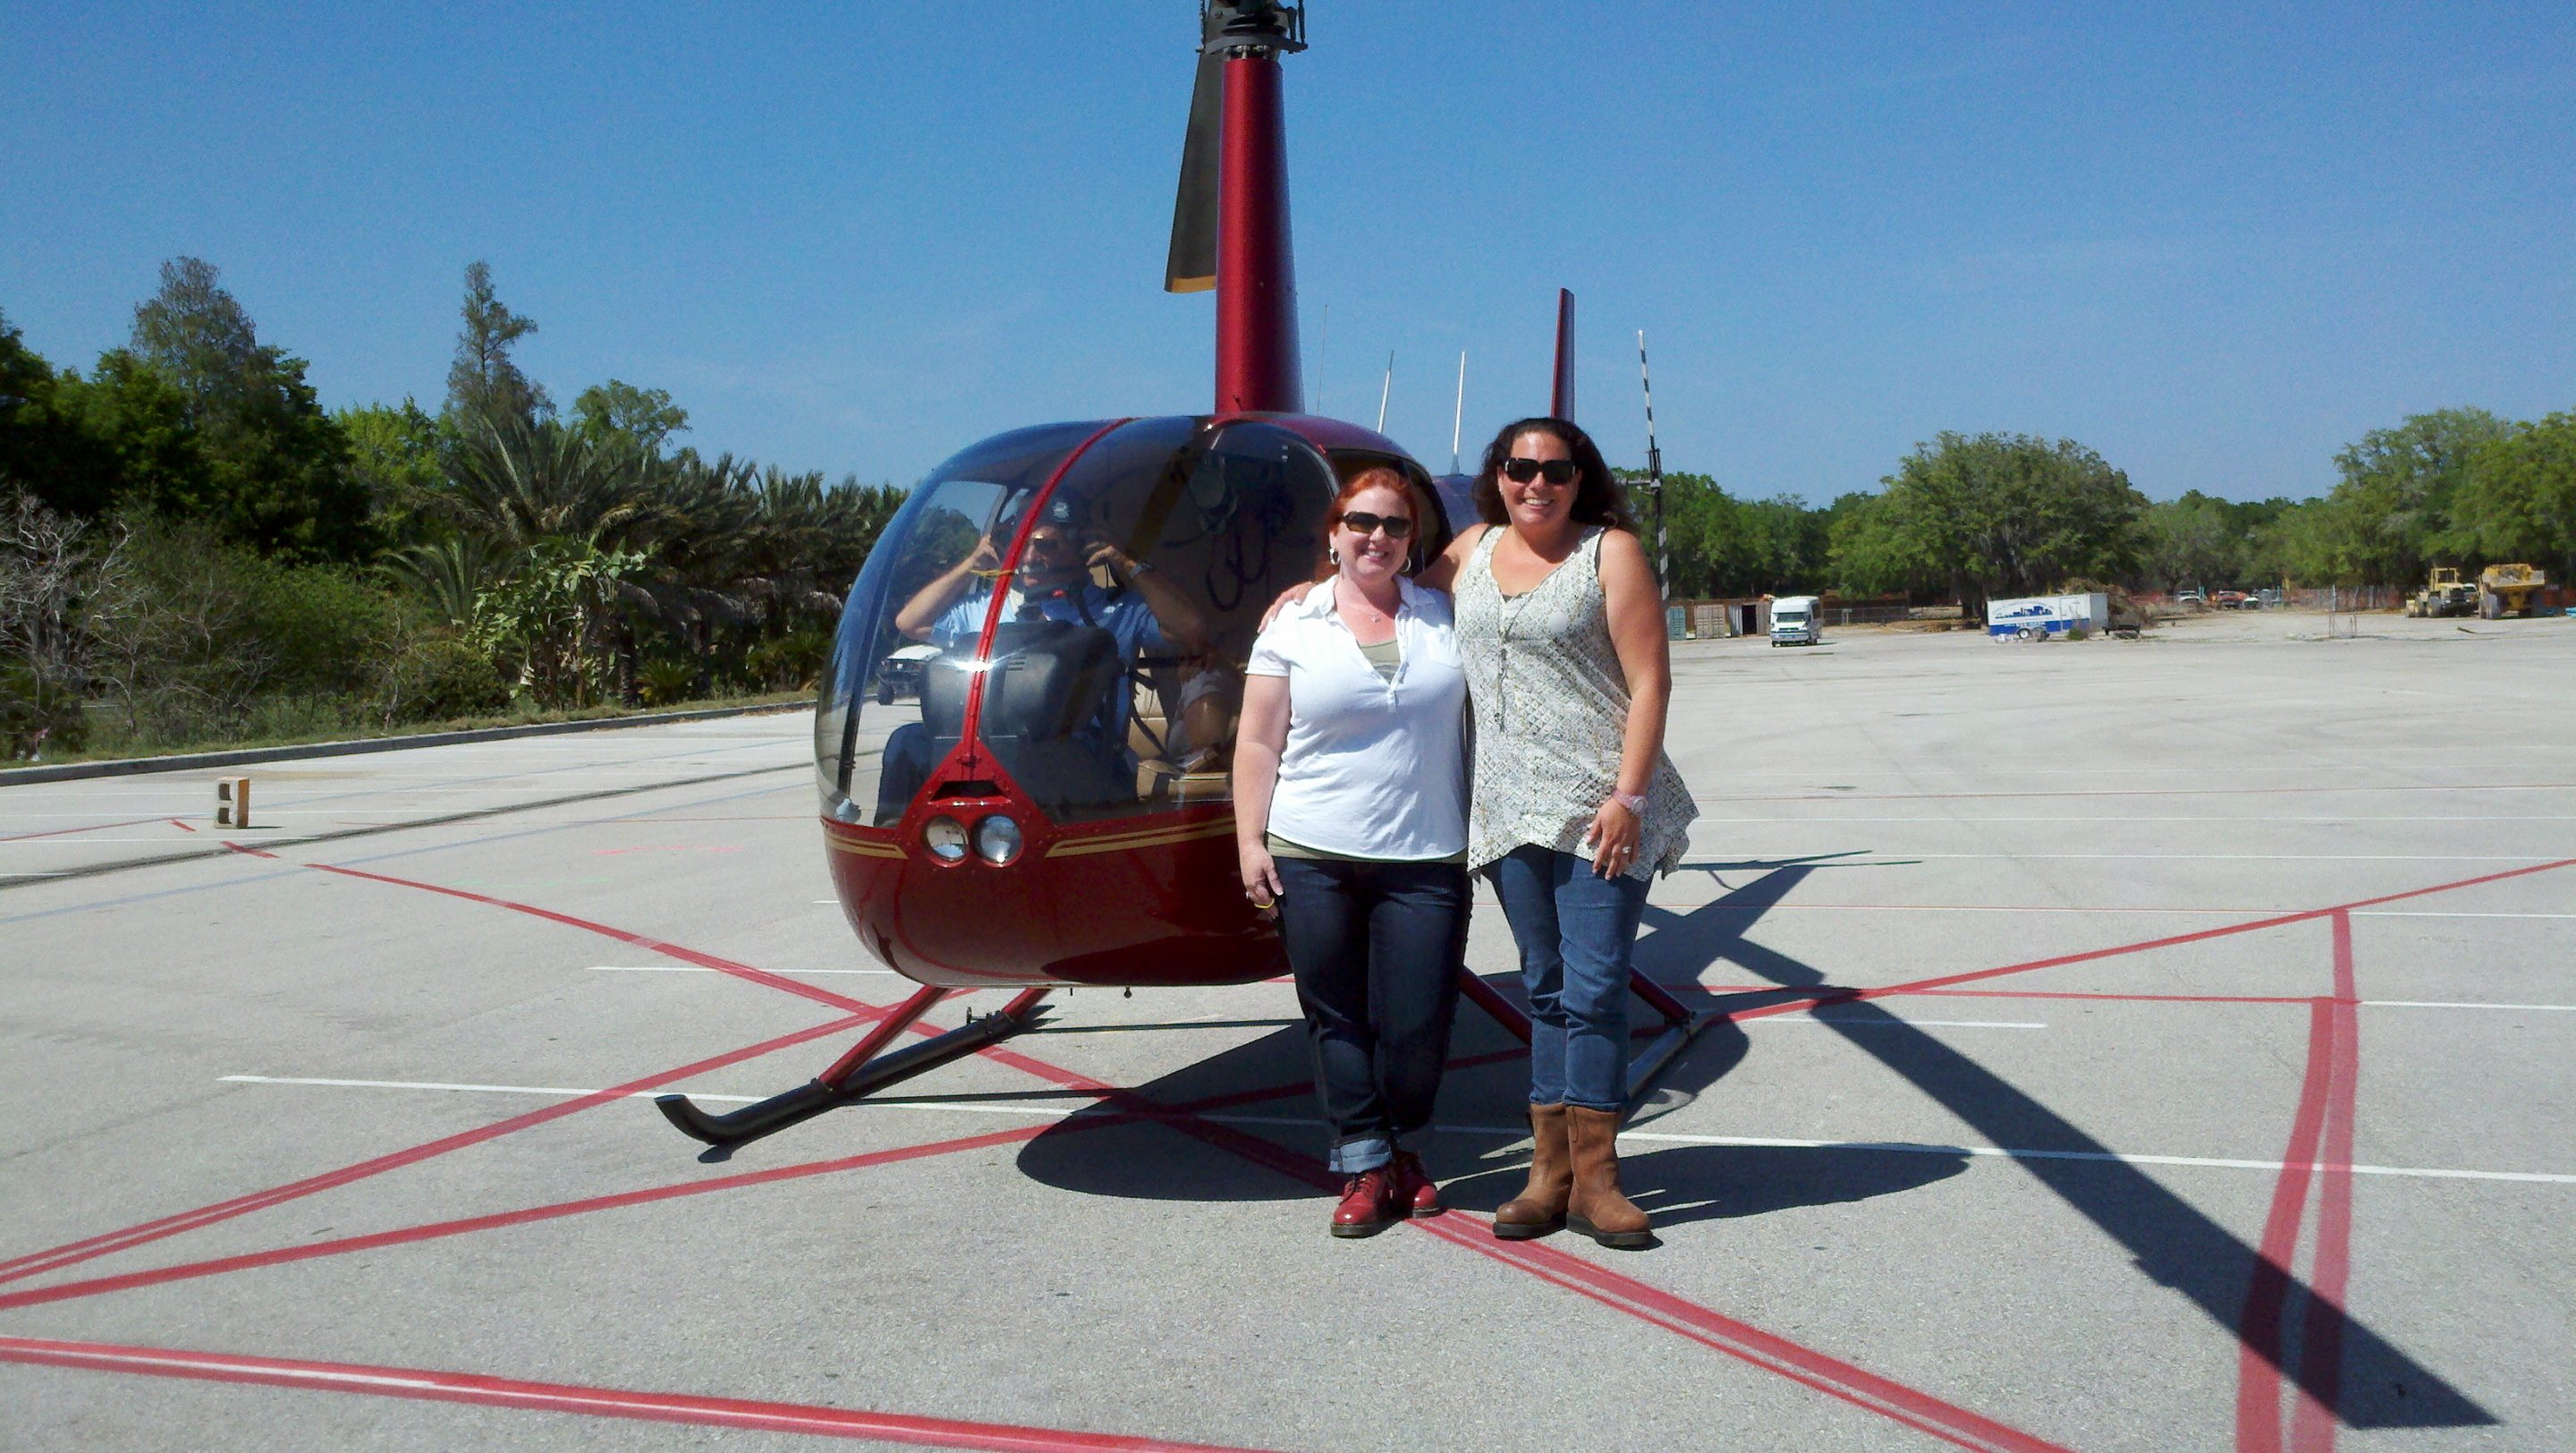 LEGOLAND Florida Helicopter Flyover and Preview Tour